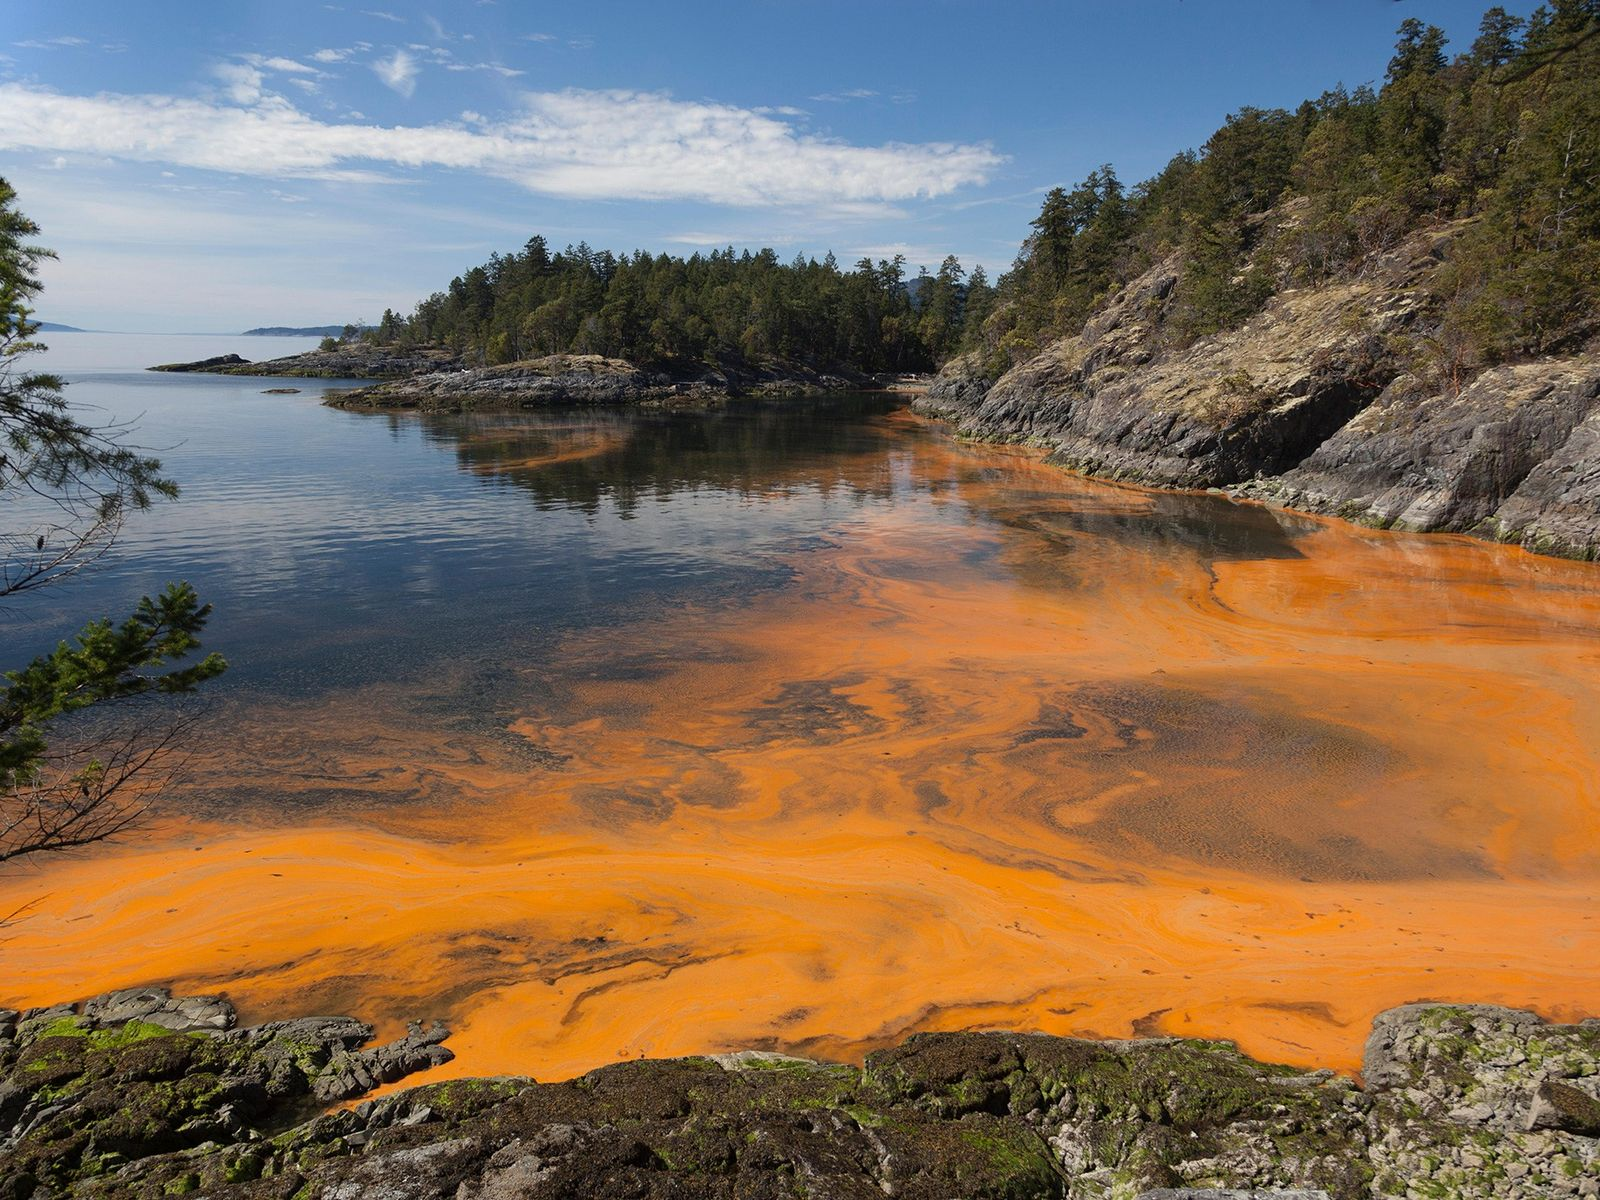 Red tides, a type of harmful algal bloom, colour the water rusty orange along the coast ...